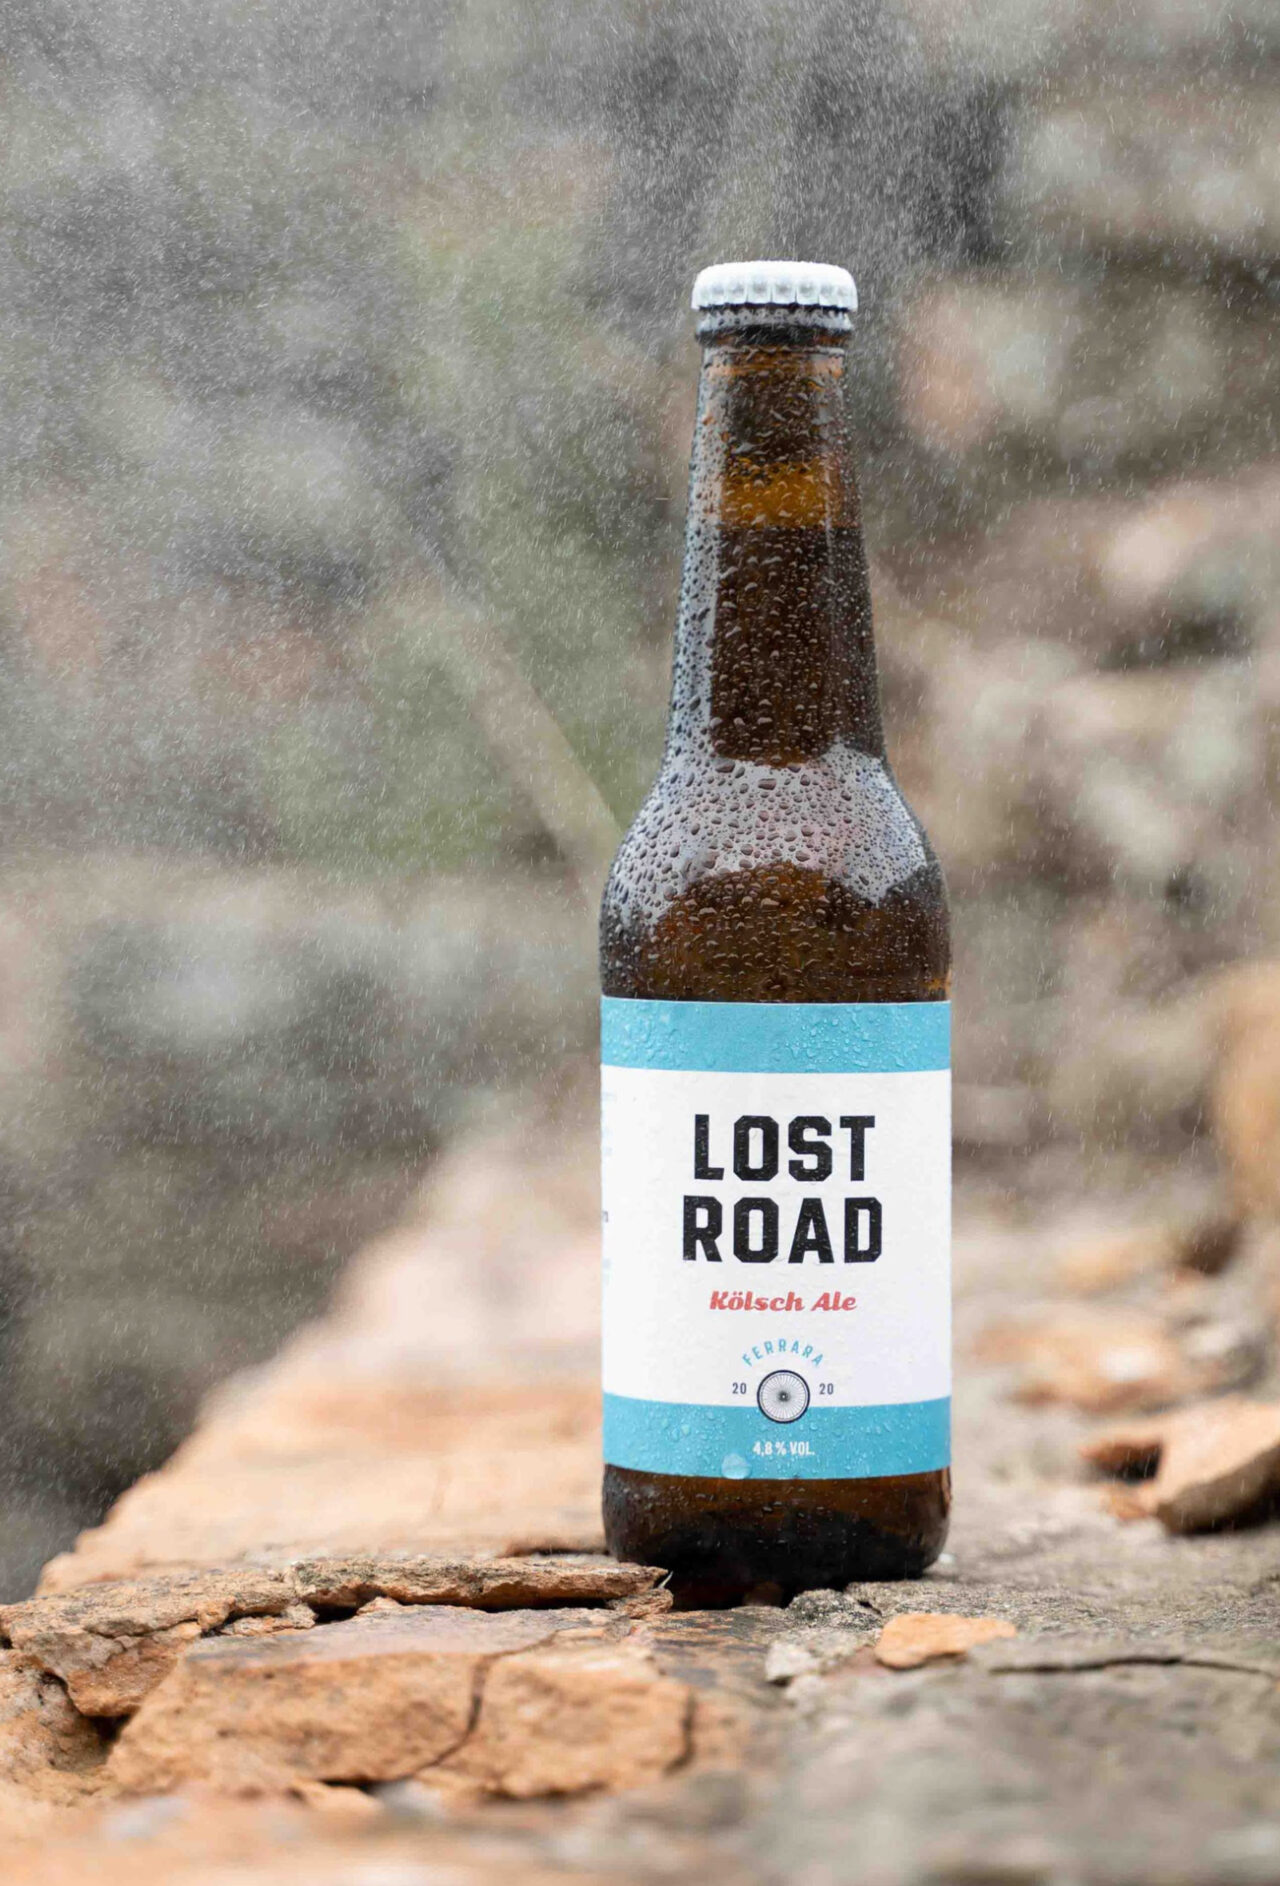 packaging-lost-road-birra-label-etichette-food-pubblicita-pasta-minerbio